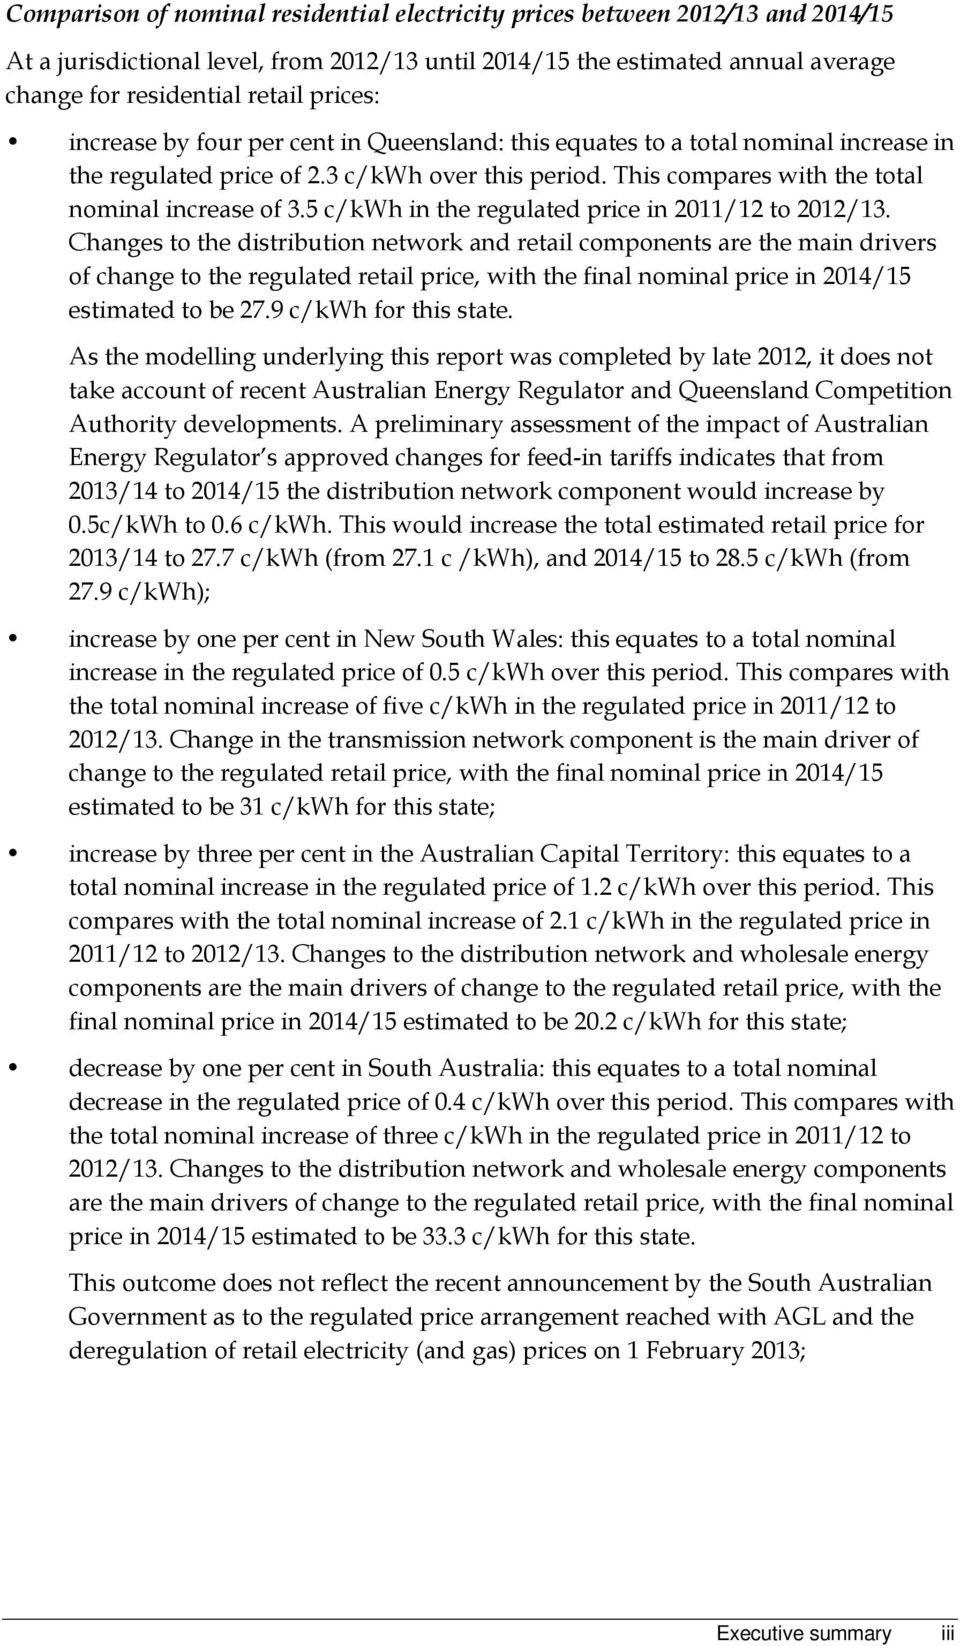 5 c/kwh in the regulated price in 2011/12 to 2012/13.